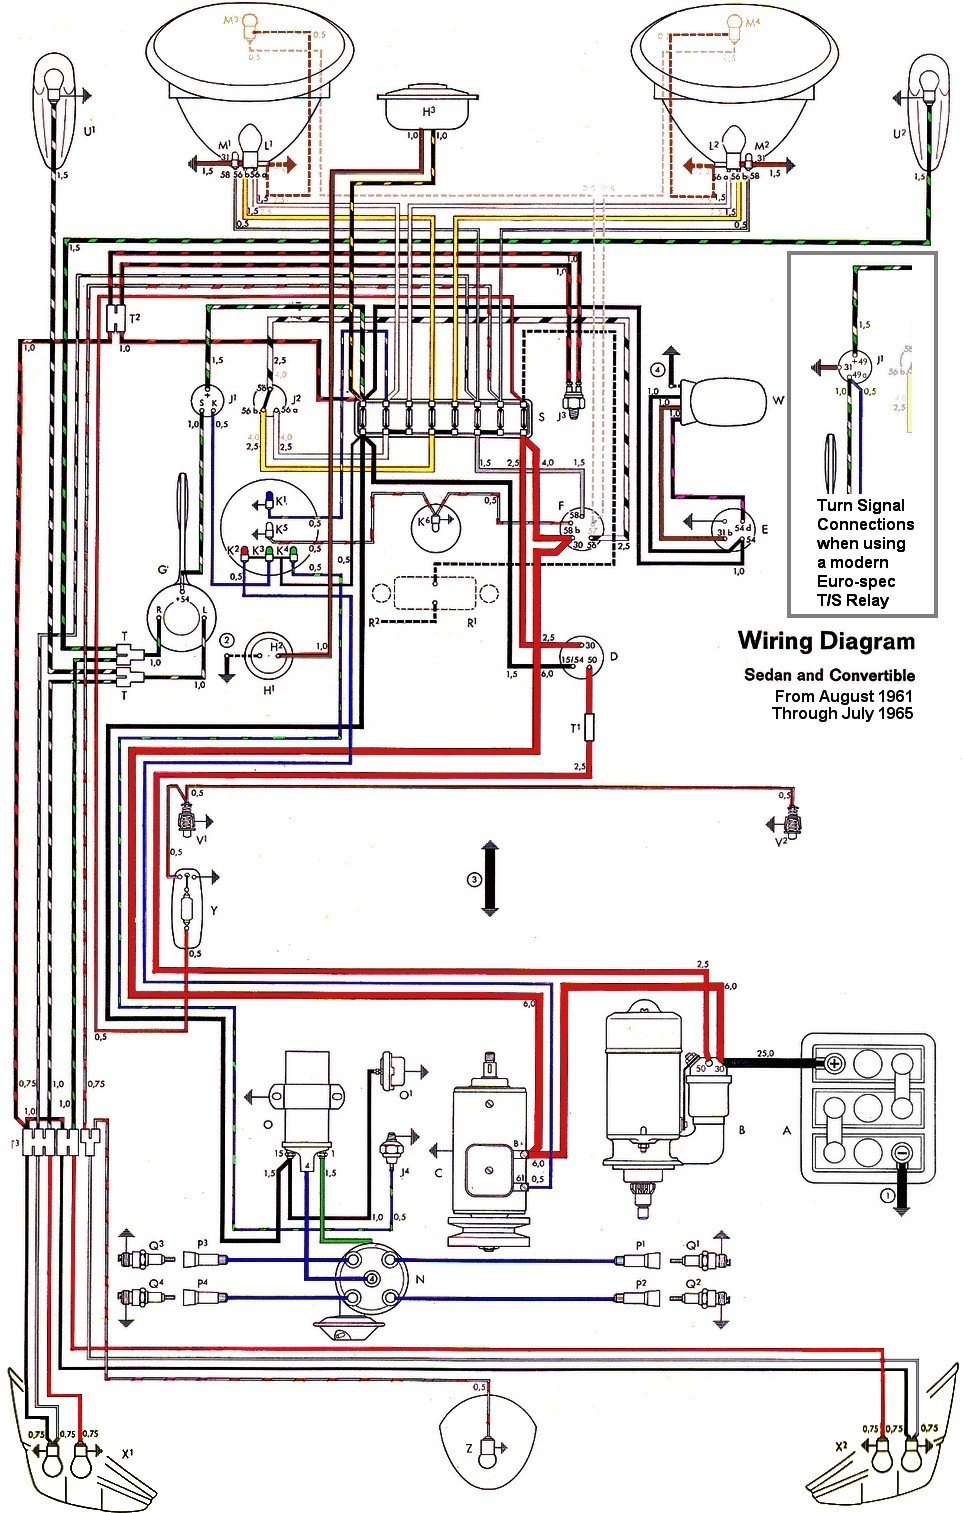 bug_62 65withinset volkswagen wiring diagram volkswagen golf wiring diagram \u2022 free vw type 3 wiring harness at fashall.co